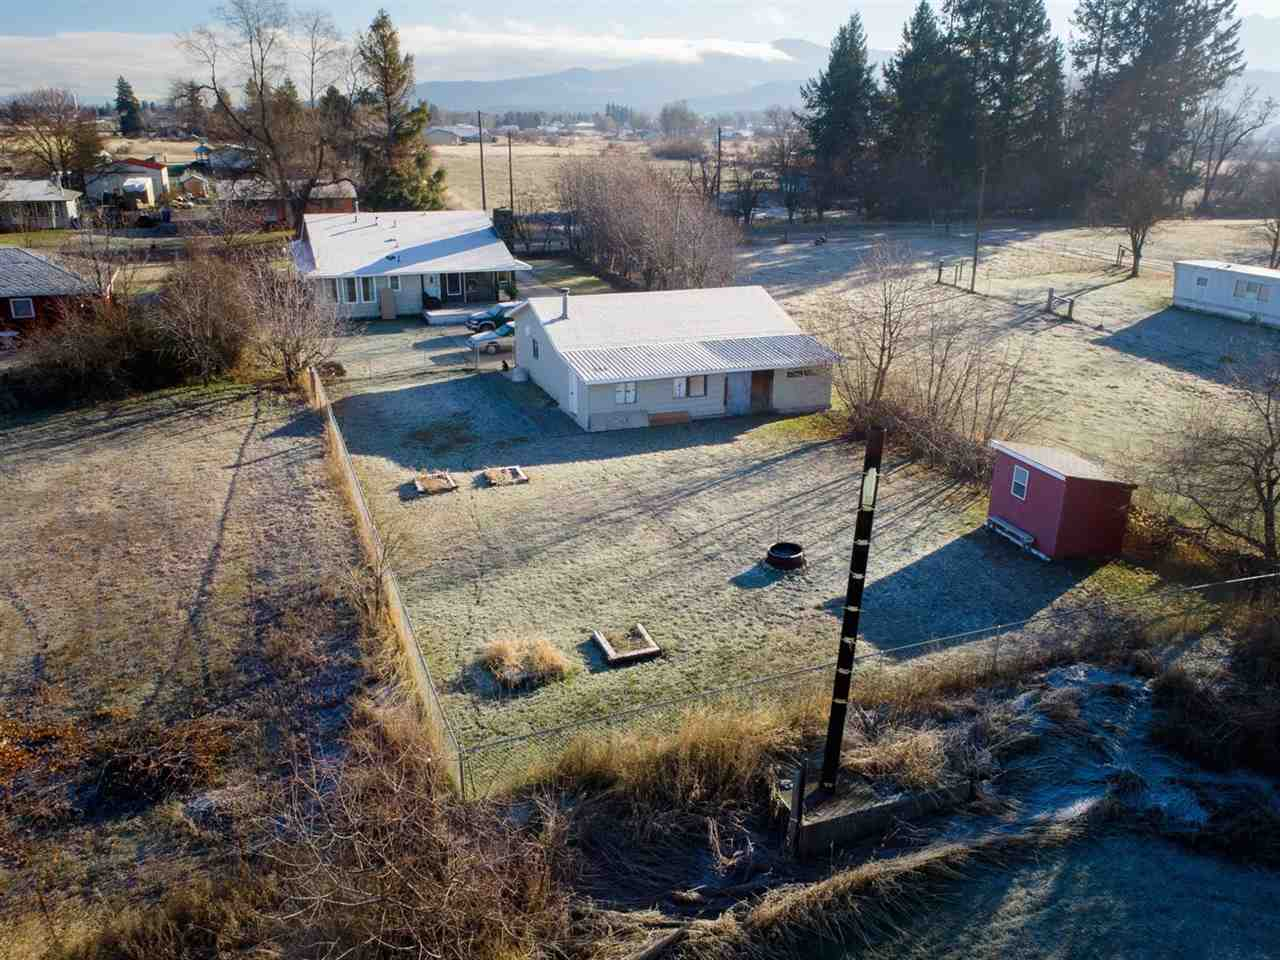 Single Family Home for Sale at 5125 N Malvern Road 5125 N Malvern Road Otis Orchards, Washington 99027 United States